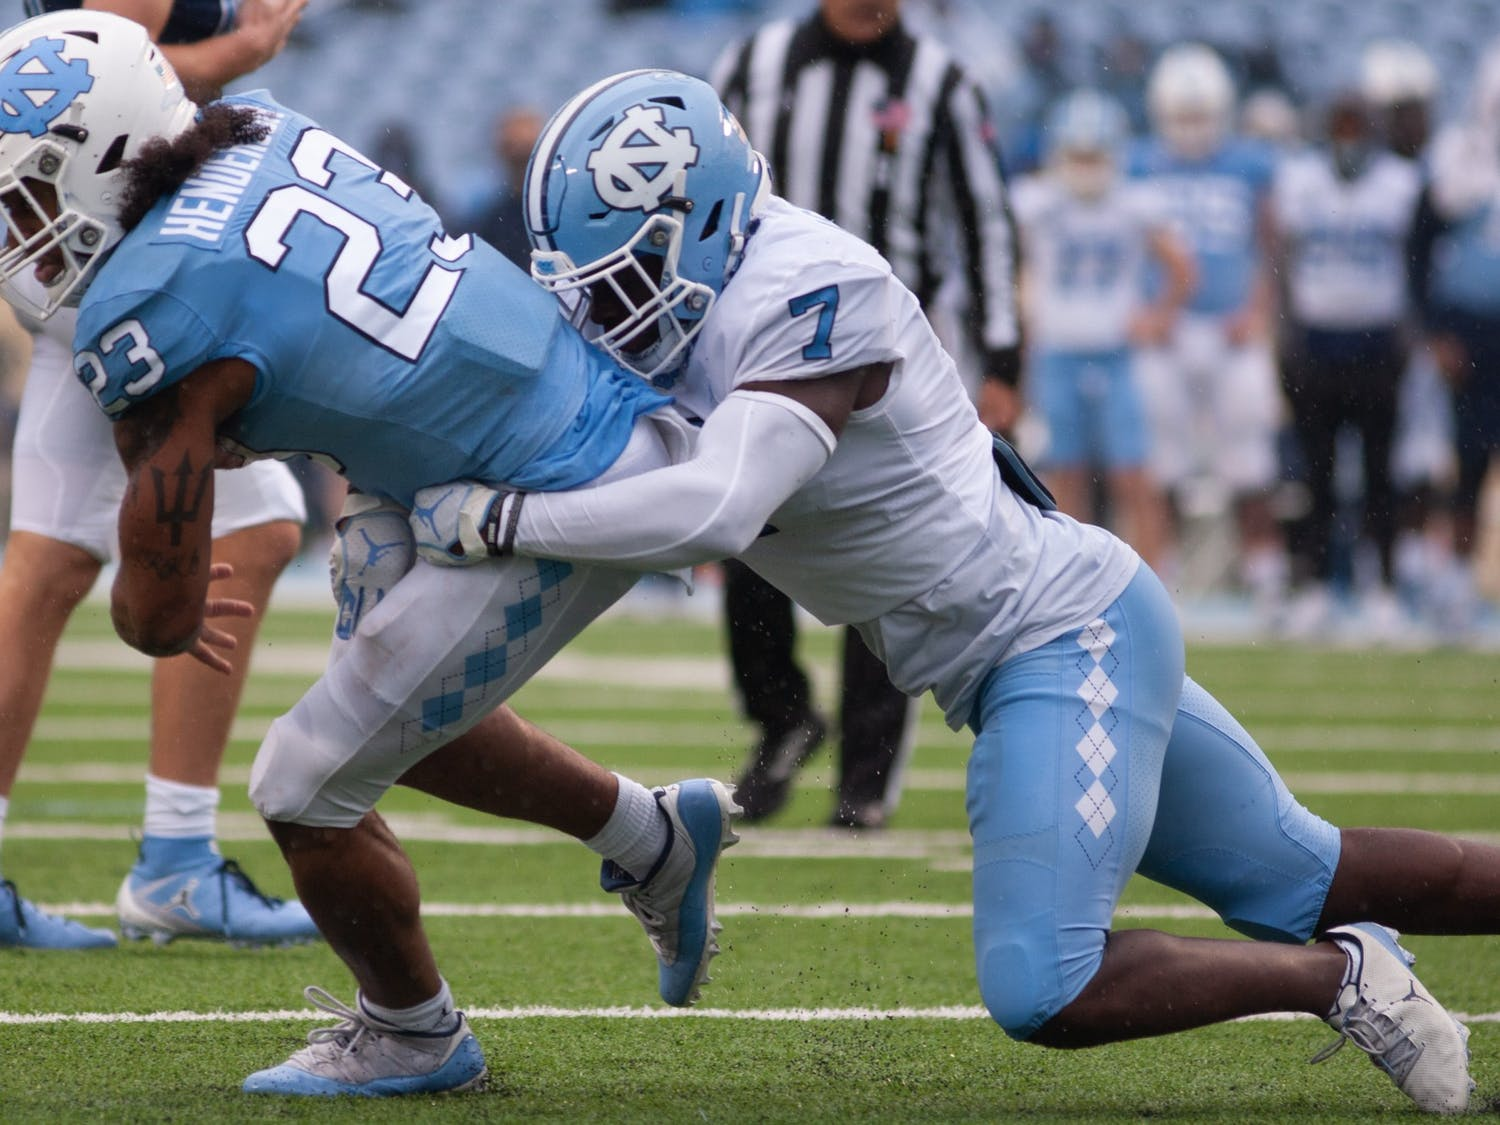 UNC junior linebacker Eugene Asante (7) tackles junior running back Josh Henderson (23) during Carolina's rainy spring game on April 24th in Kenan Stadium.